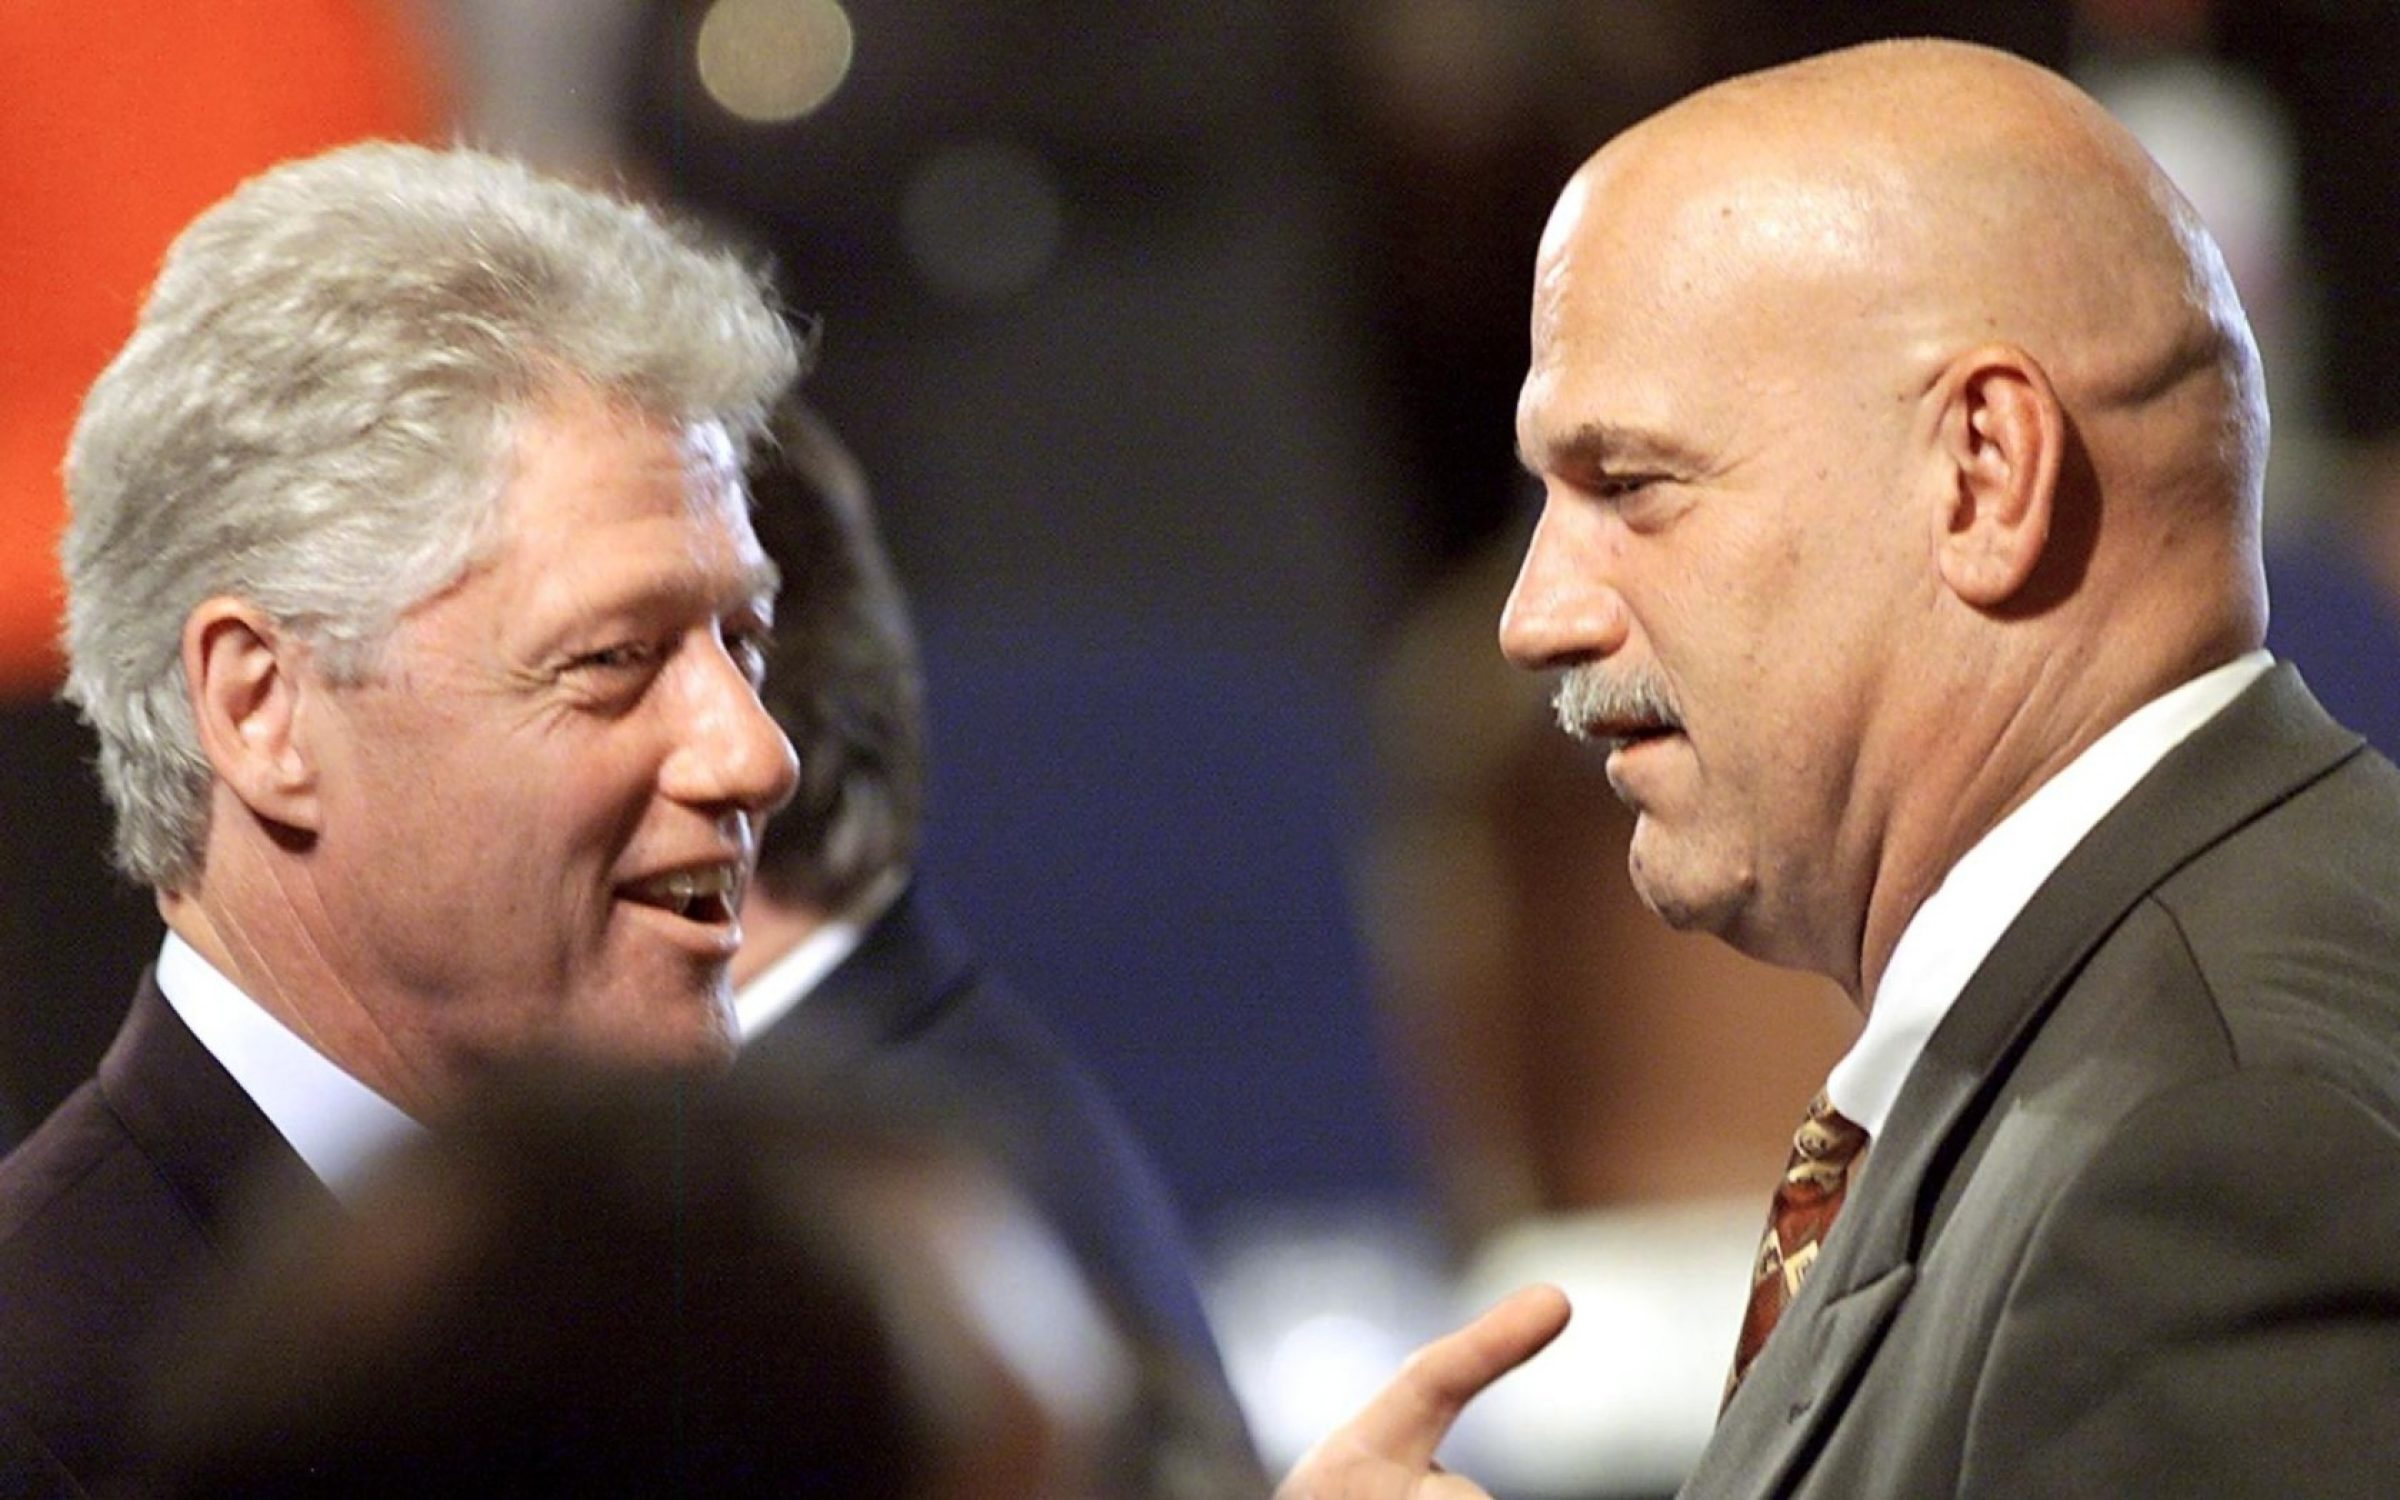 Jesse Ventura speaks with Bill Clinton at the National Governors' Association Convention, 1999. Credit: Stephen Jaffe / AFP via Getty Images.